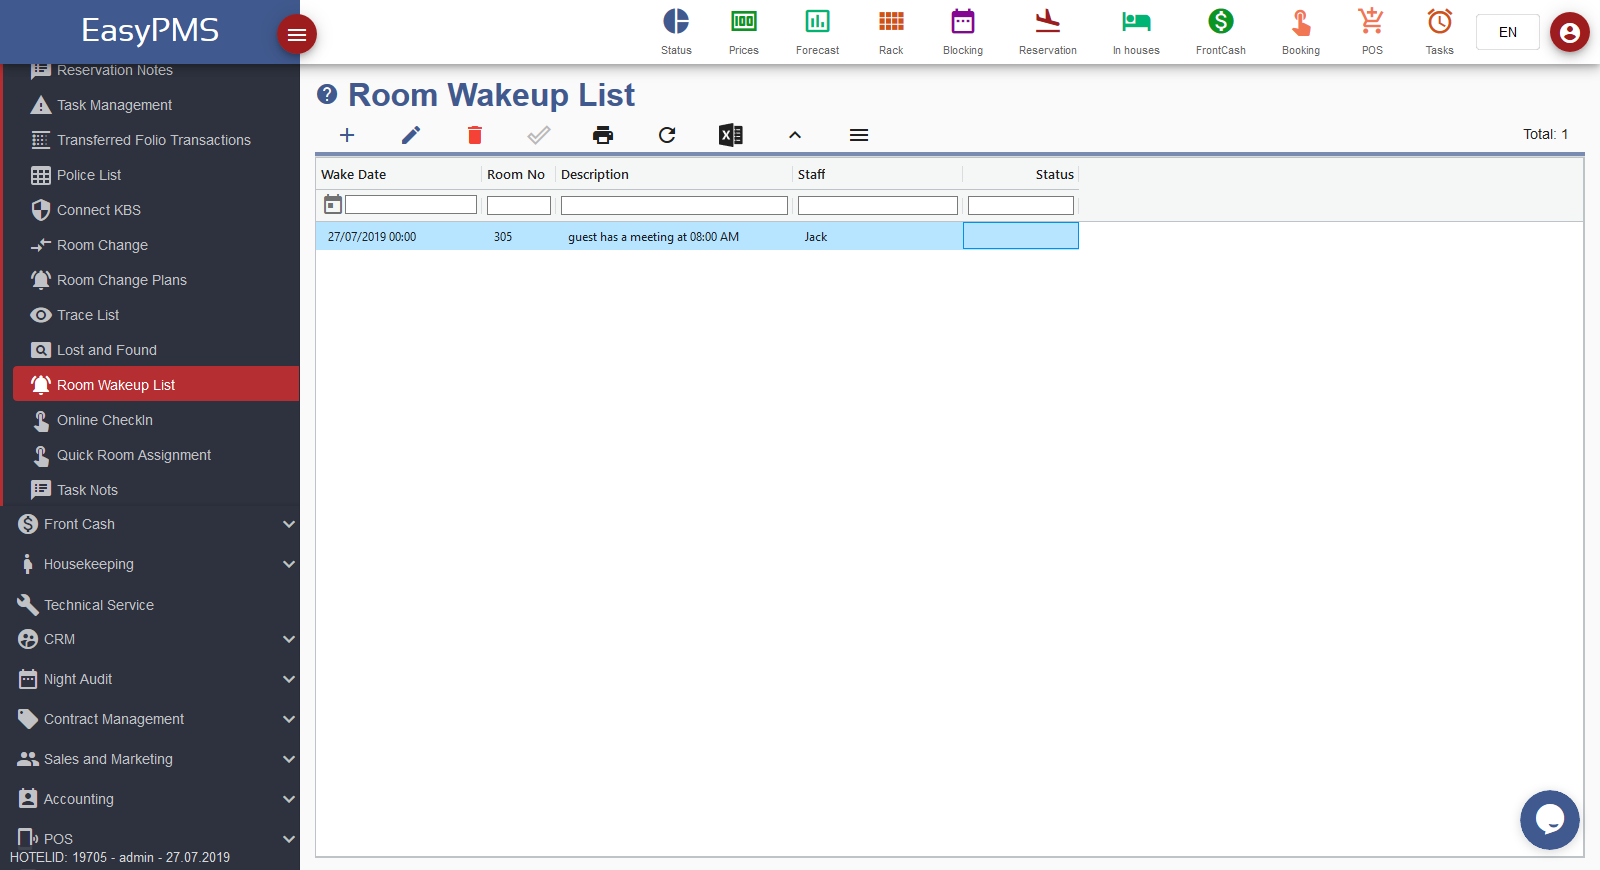 easypms hotel software room wake up list